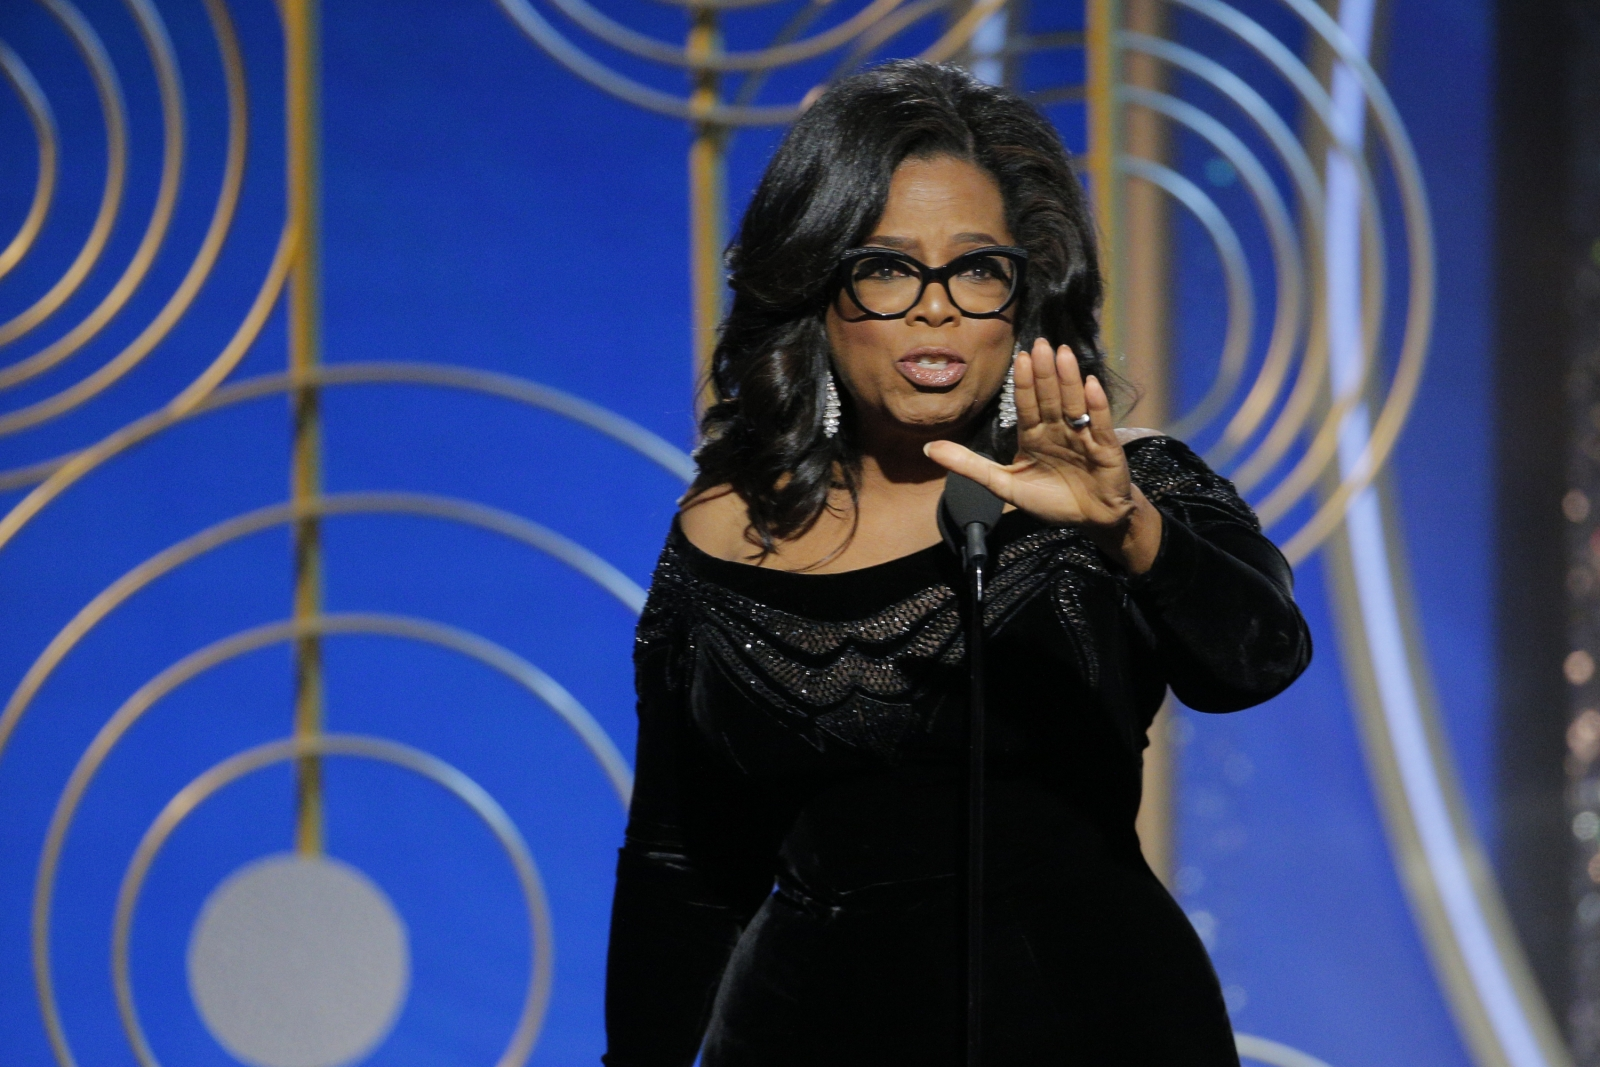 If Oprah Runs For President, CBS News Faces Potential Conflict